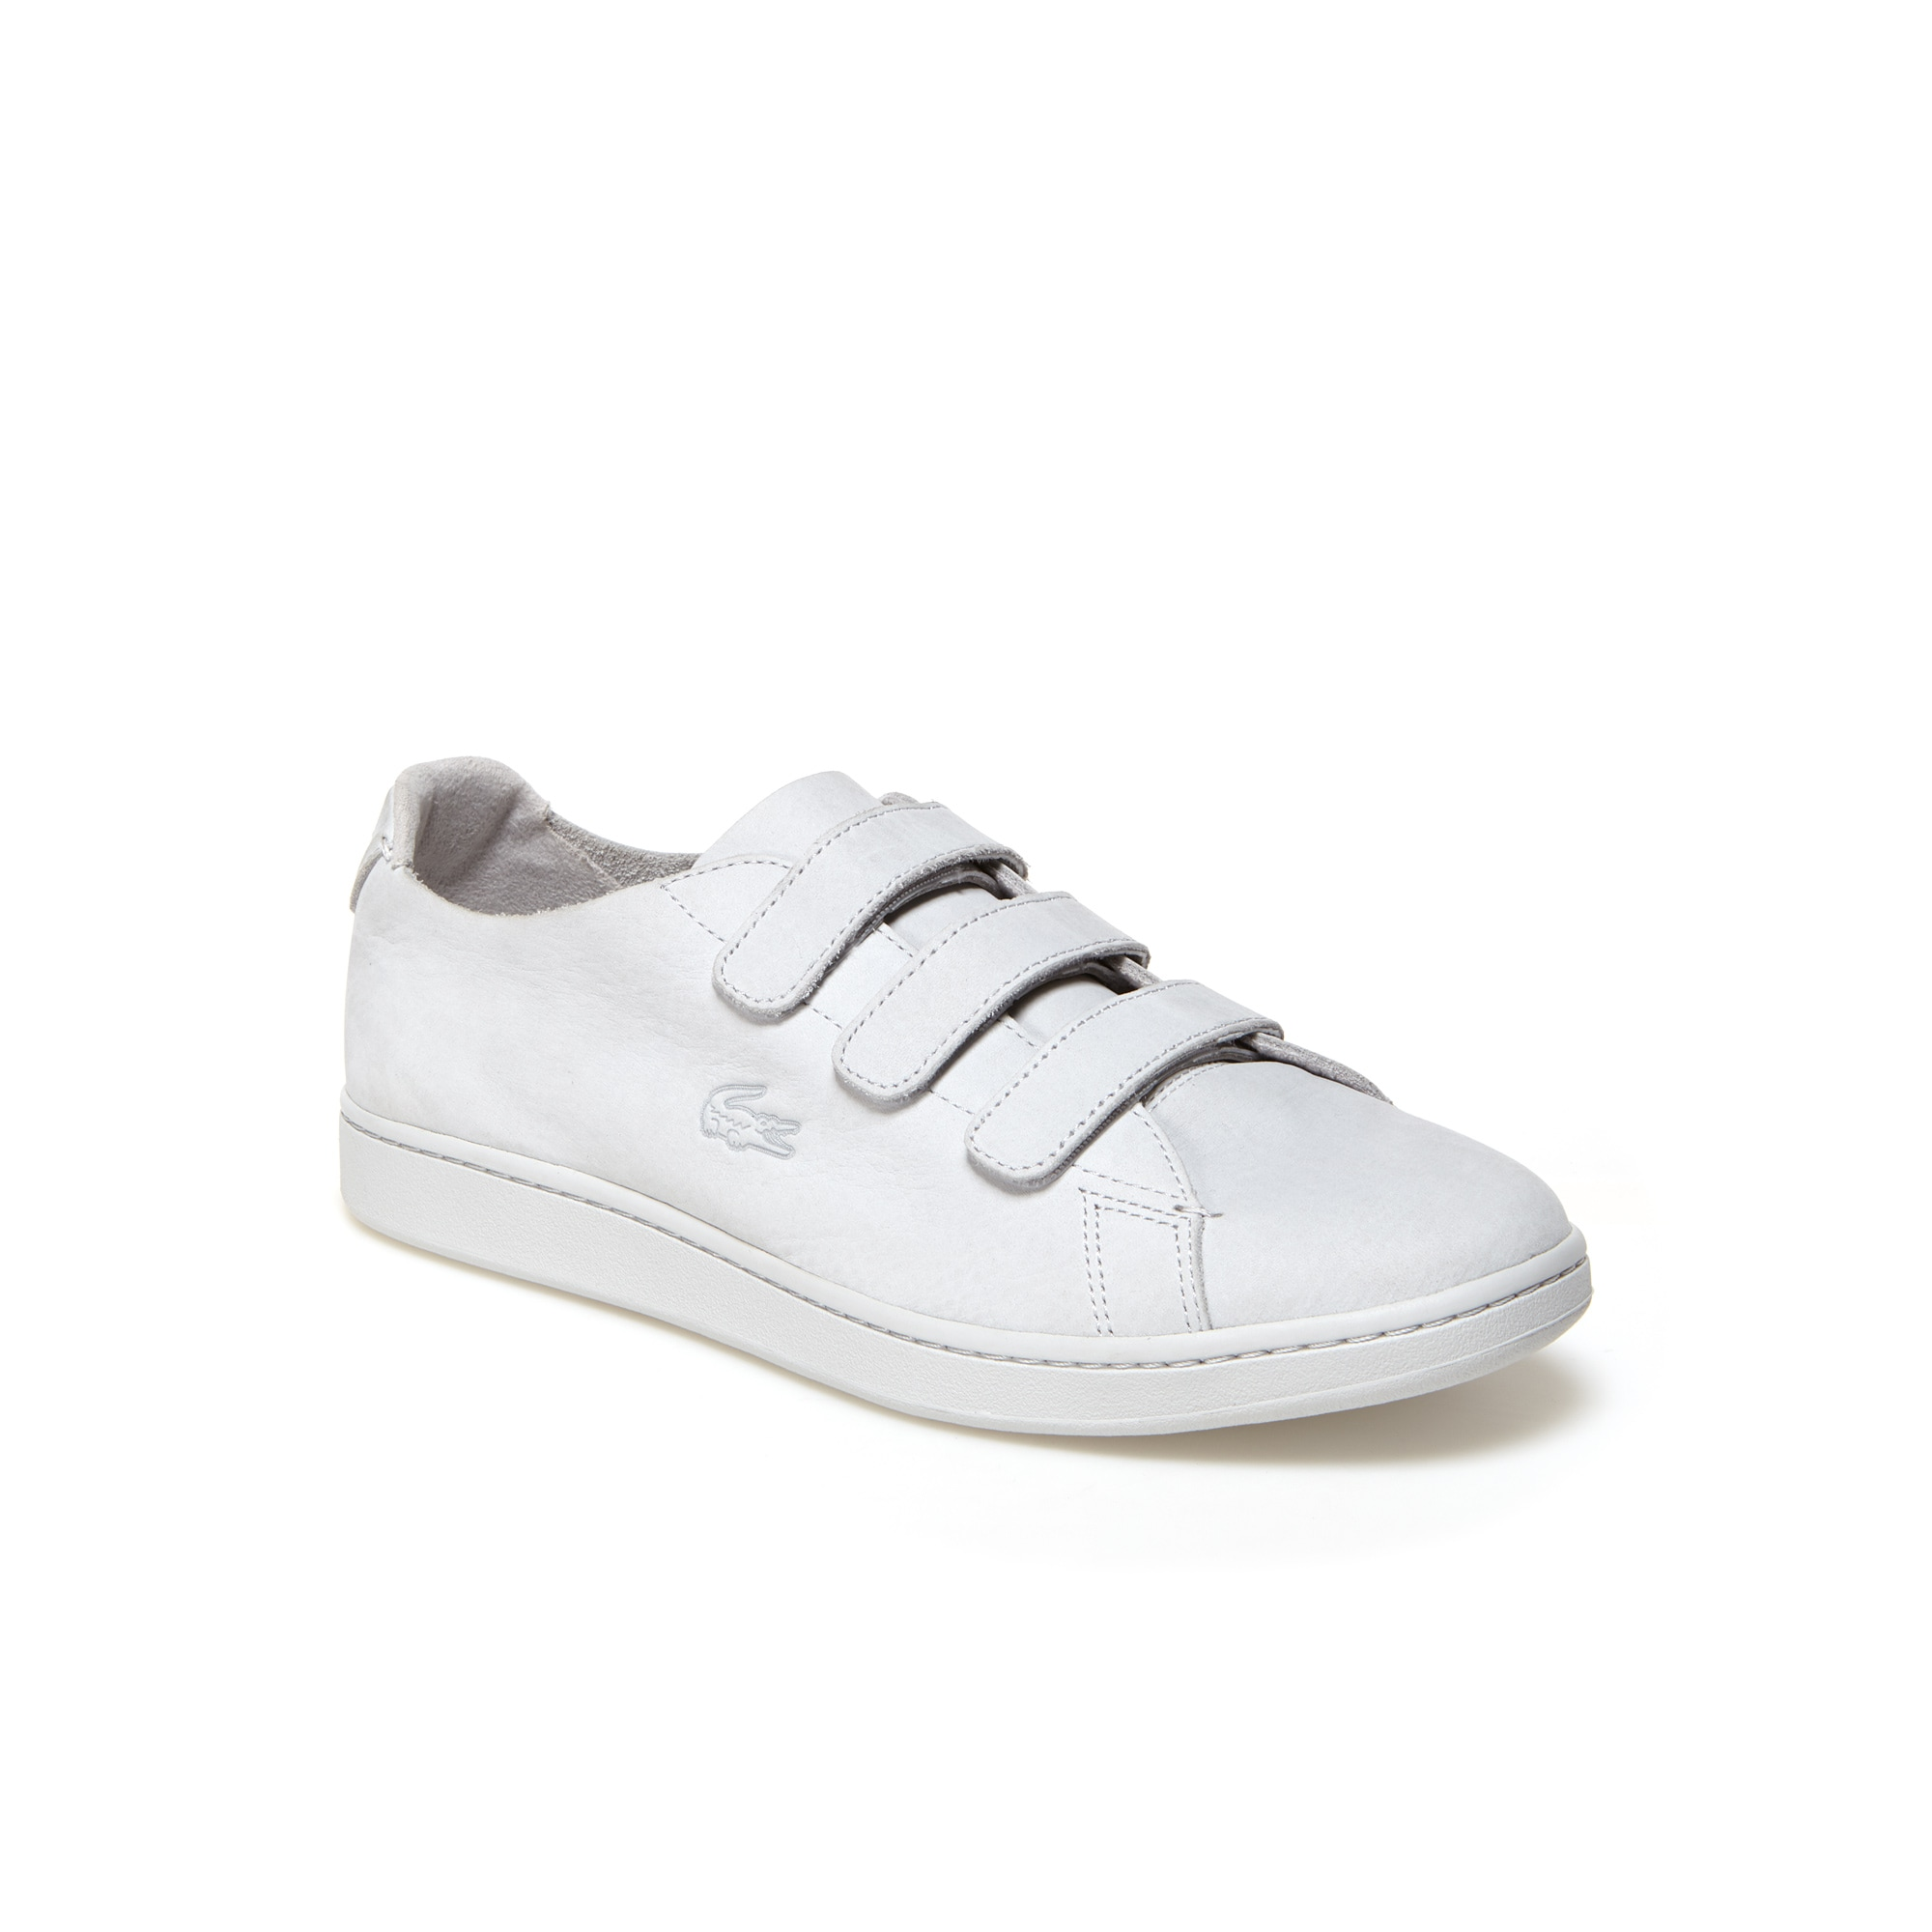 Men's Carnaby Strap Leather Sneakers